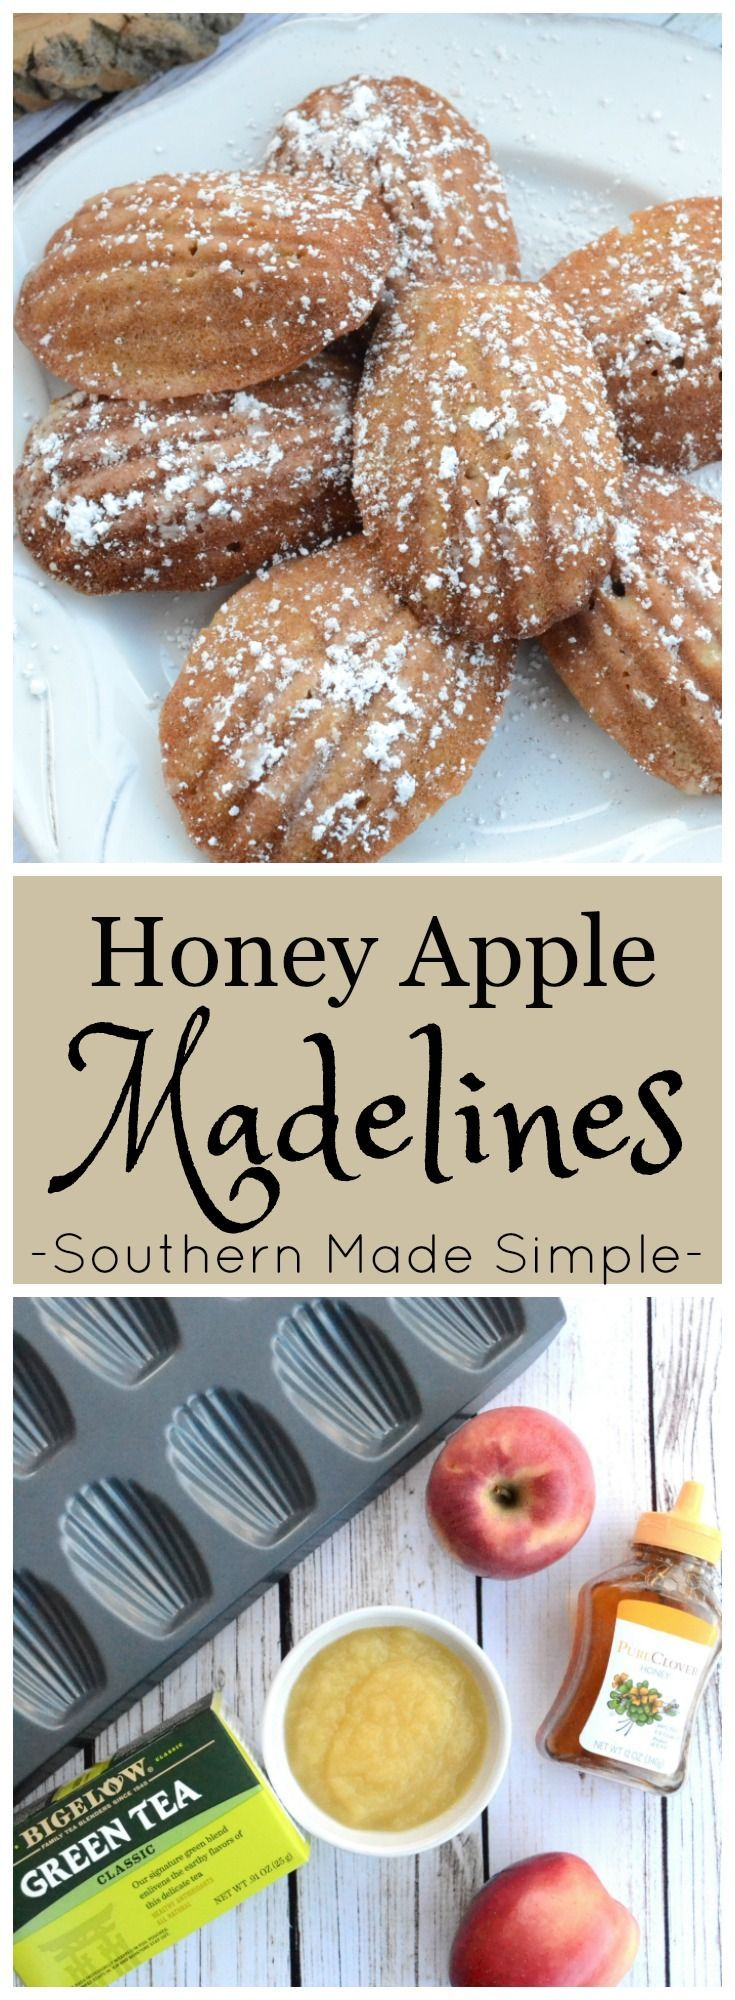 Tea is ALWAYS a good choice, and it's an even better choice when it's served with a side of these sweet Honey Apple Madelines sprinkled with a smidge of powdered sugar! #TeaProudly #ad